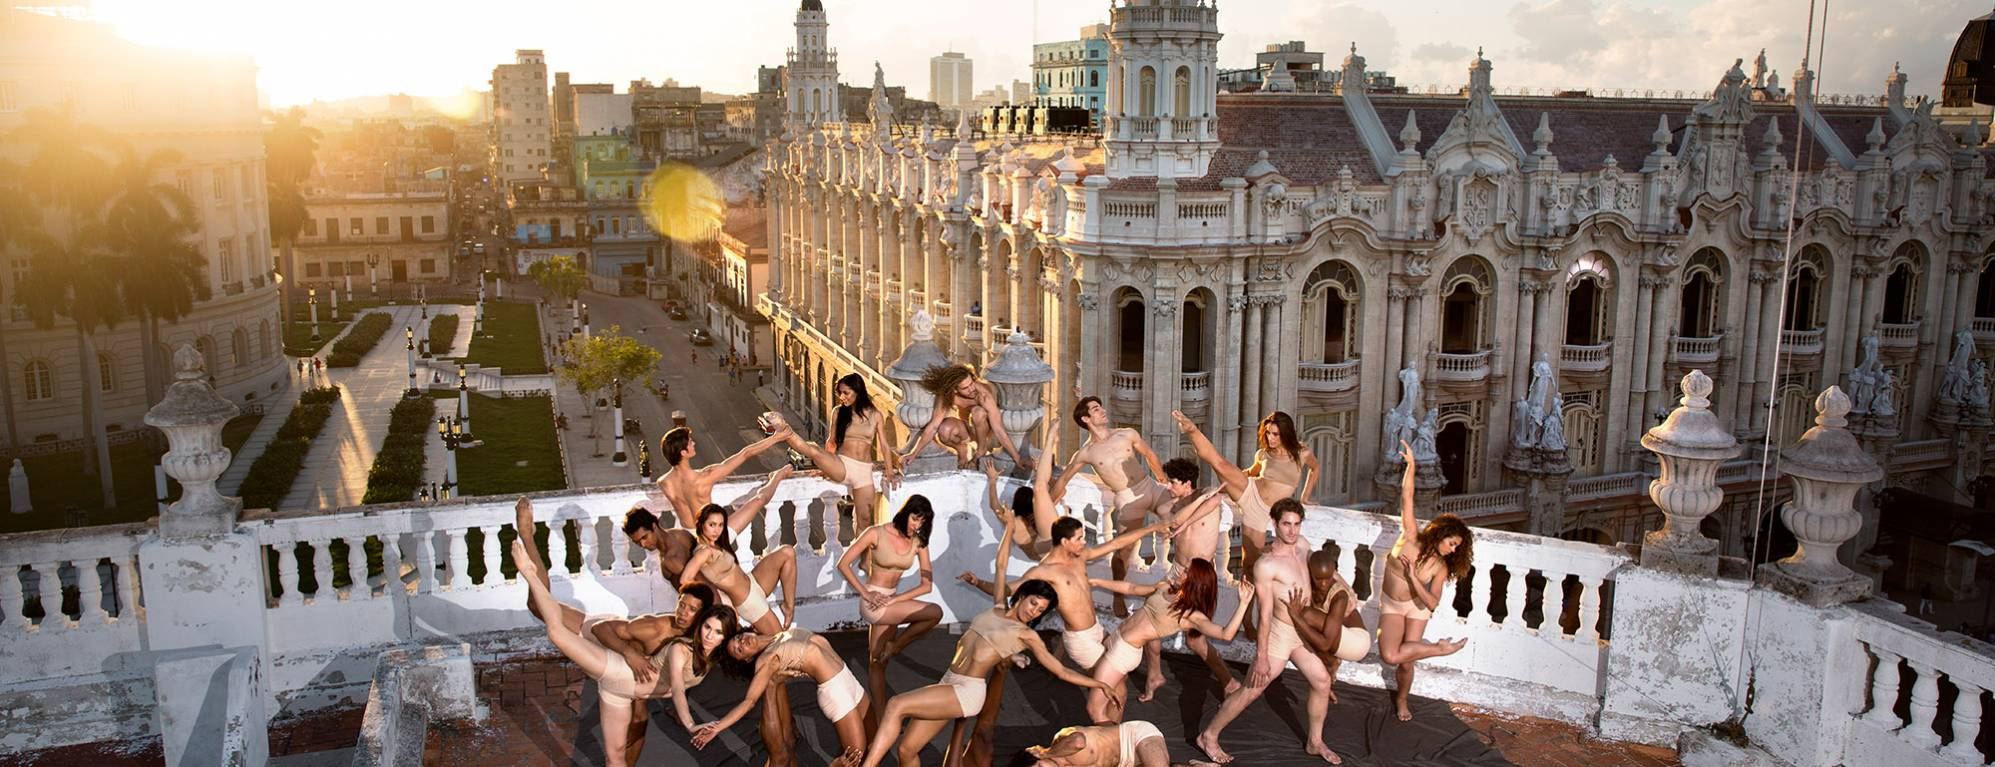 Acosta Dancers posing on the roof of a building in Cuba